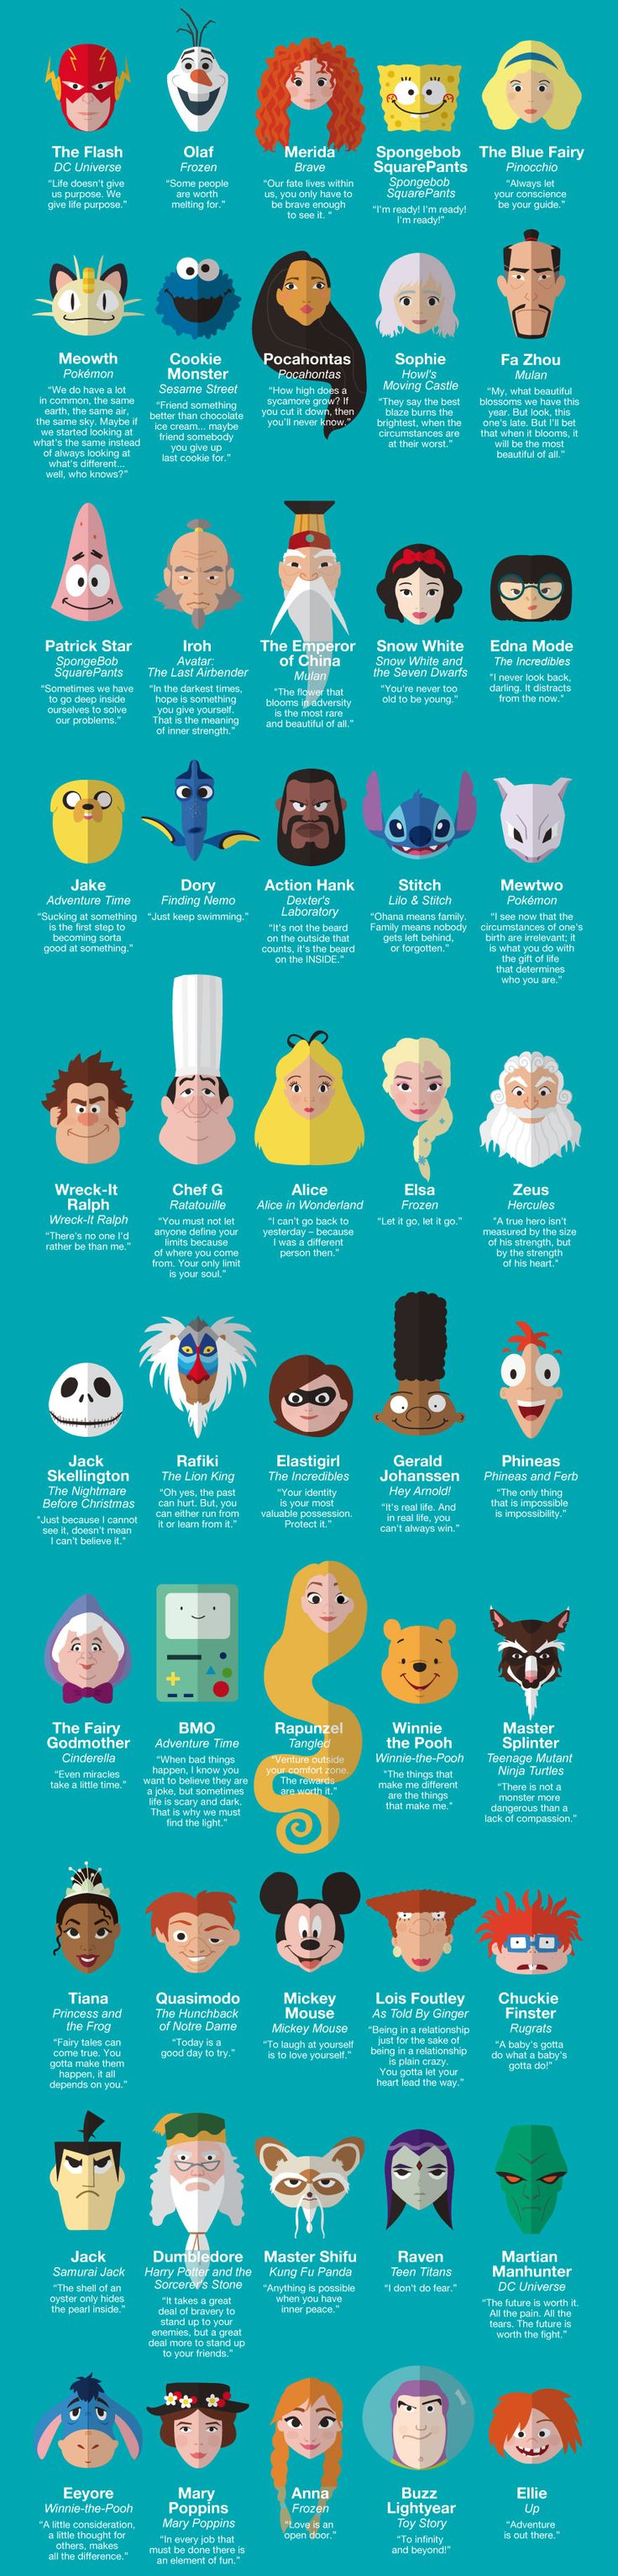 50 Inspiring Life Quotes From Famous Childhood Characters